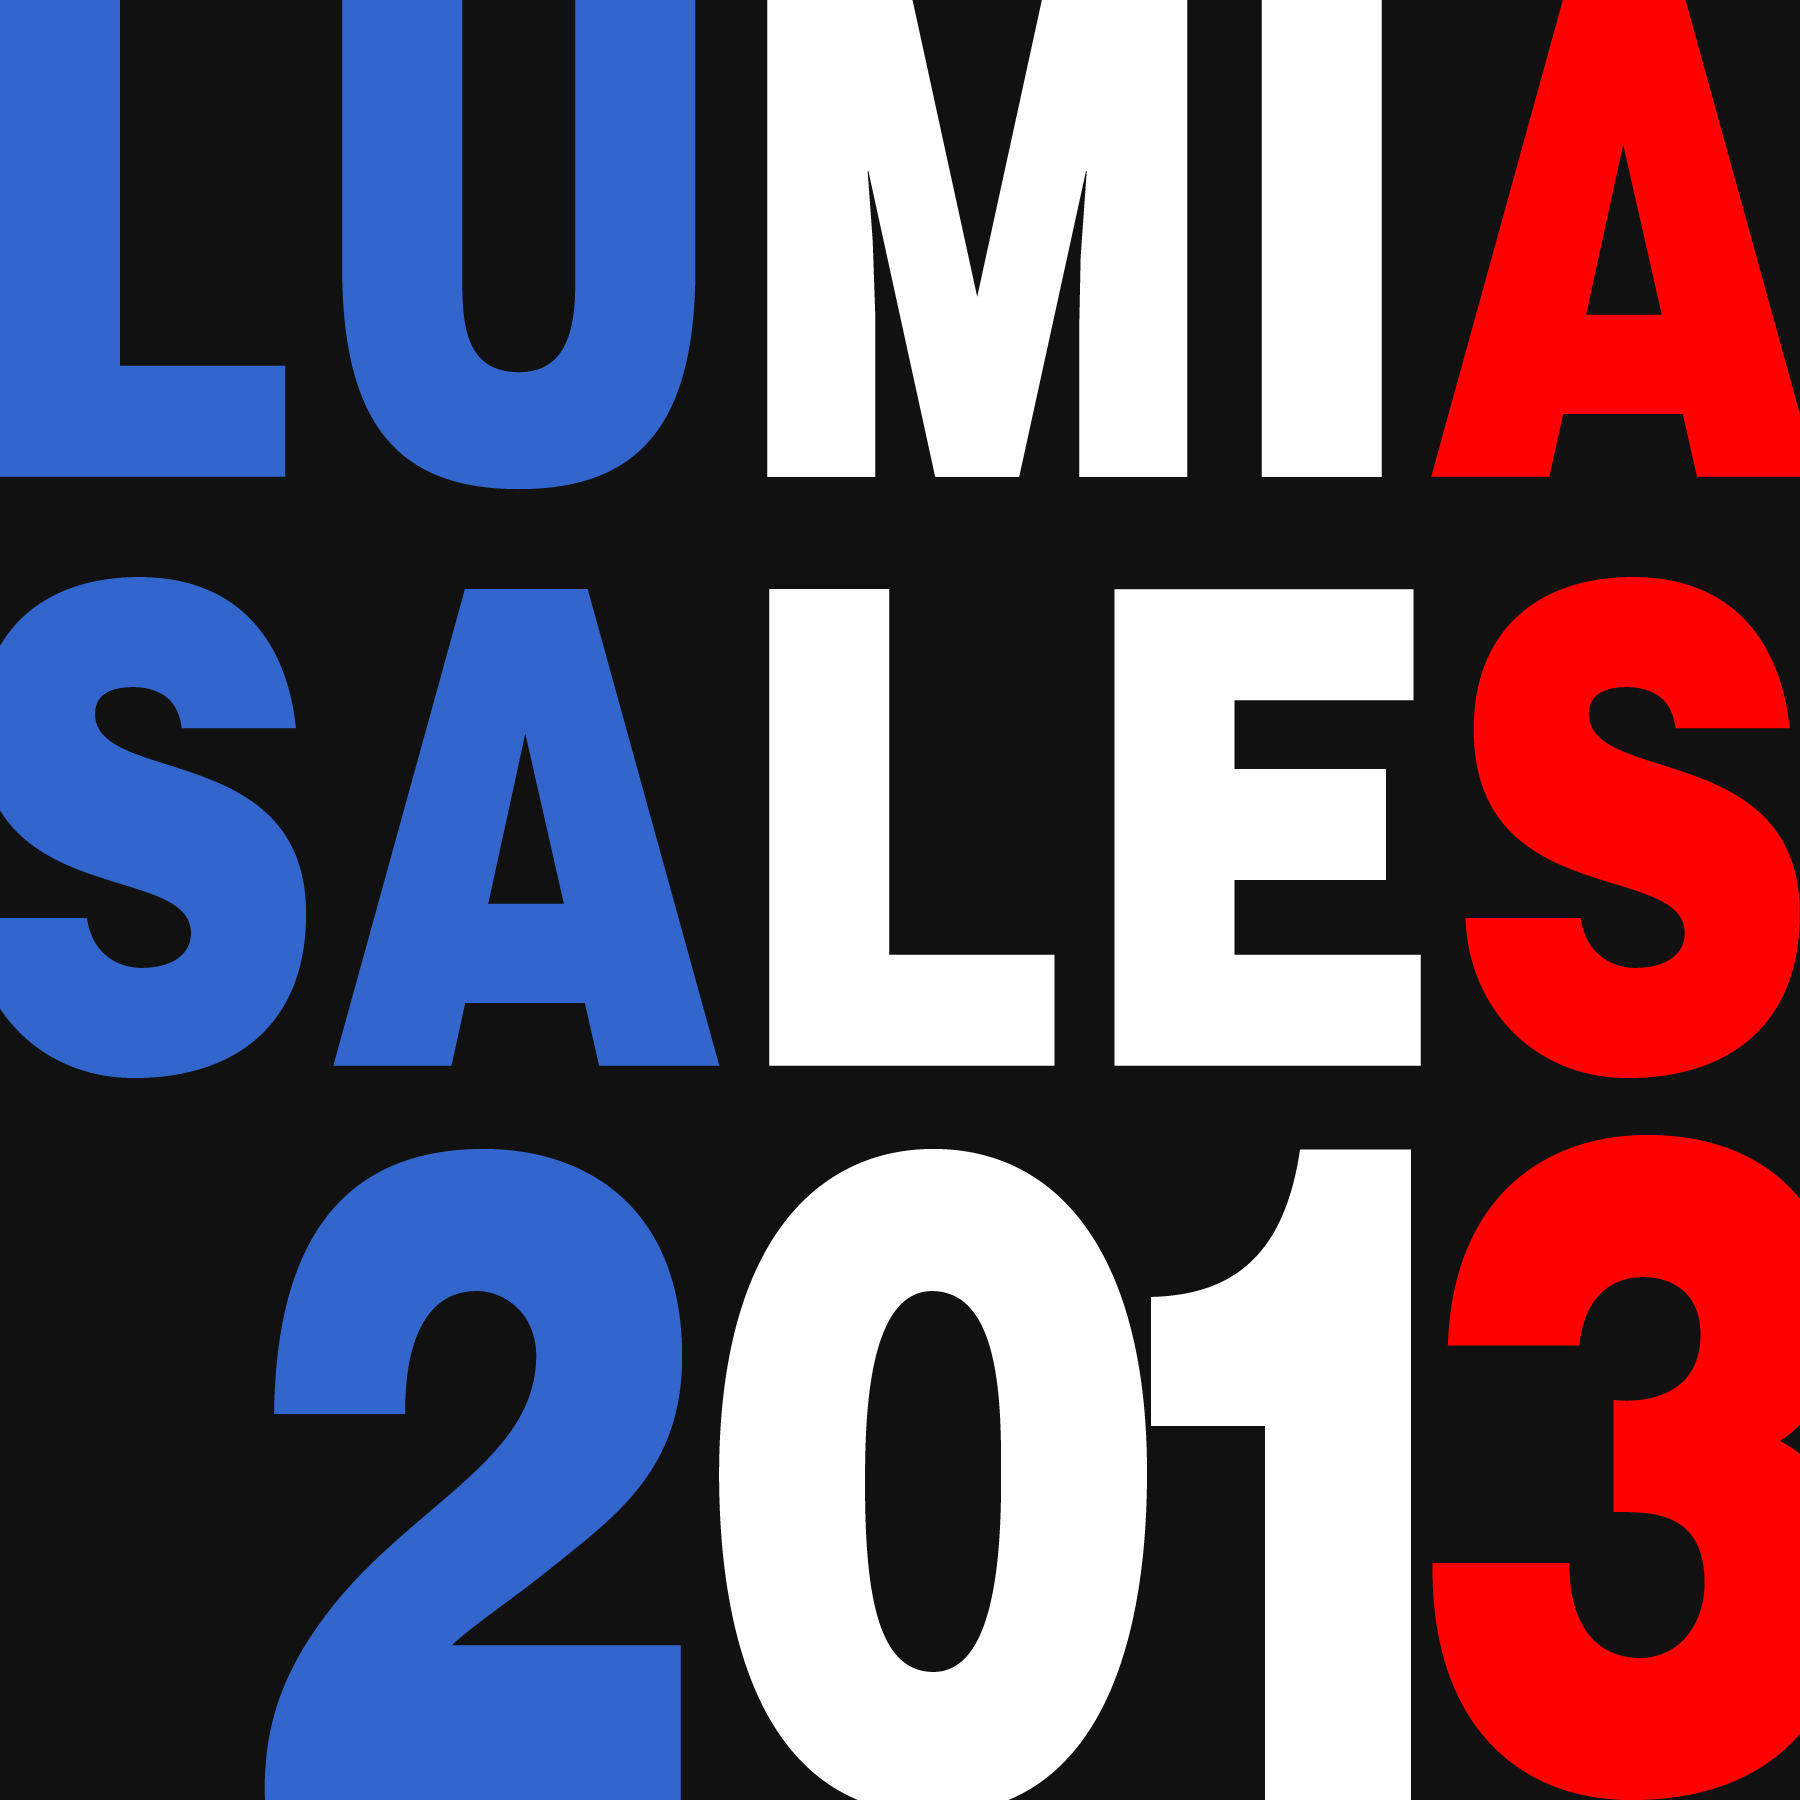 An analysis of French Lumia sales in 2013.